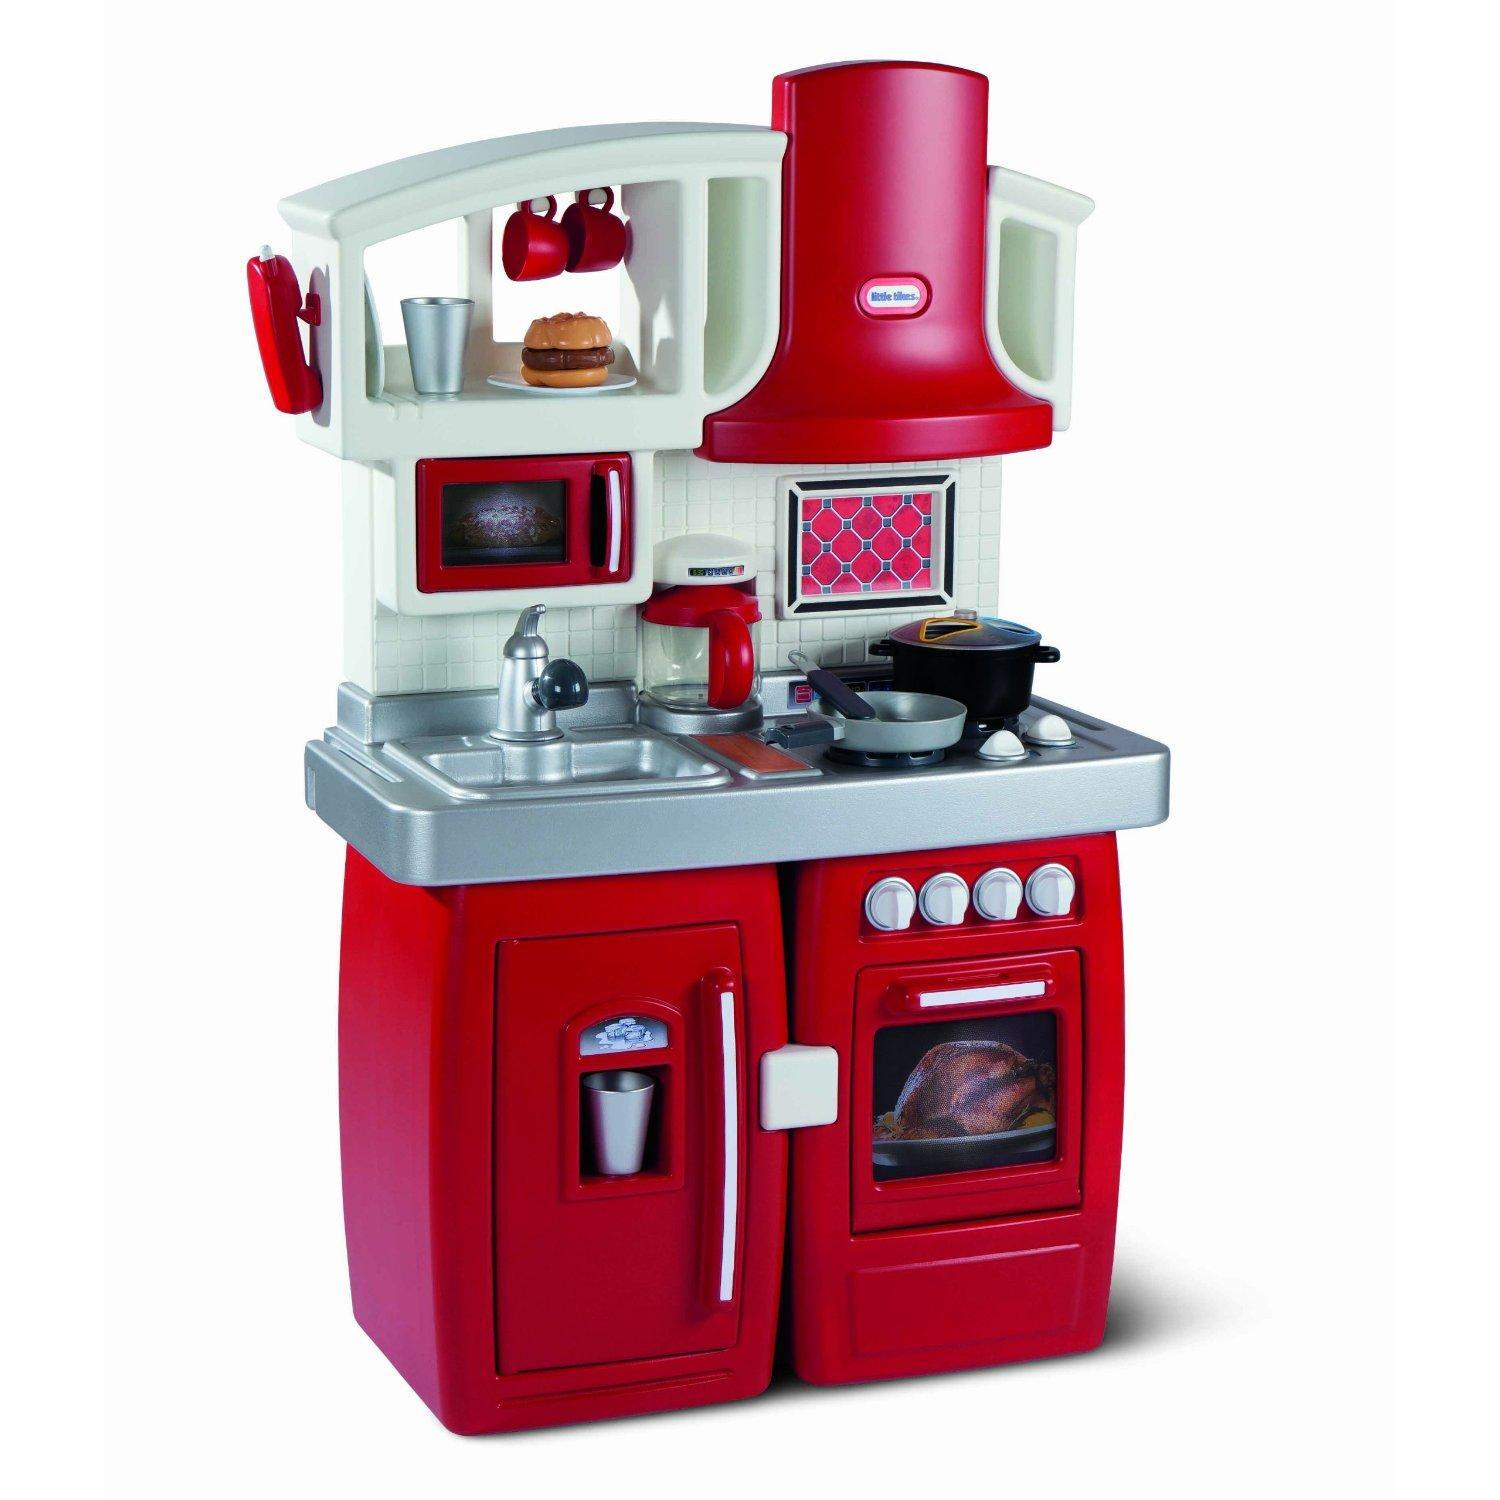 Little Tikes Cook 'n Grow Kitchen By OJ Commerce 626012M